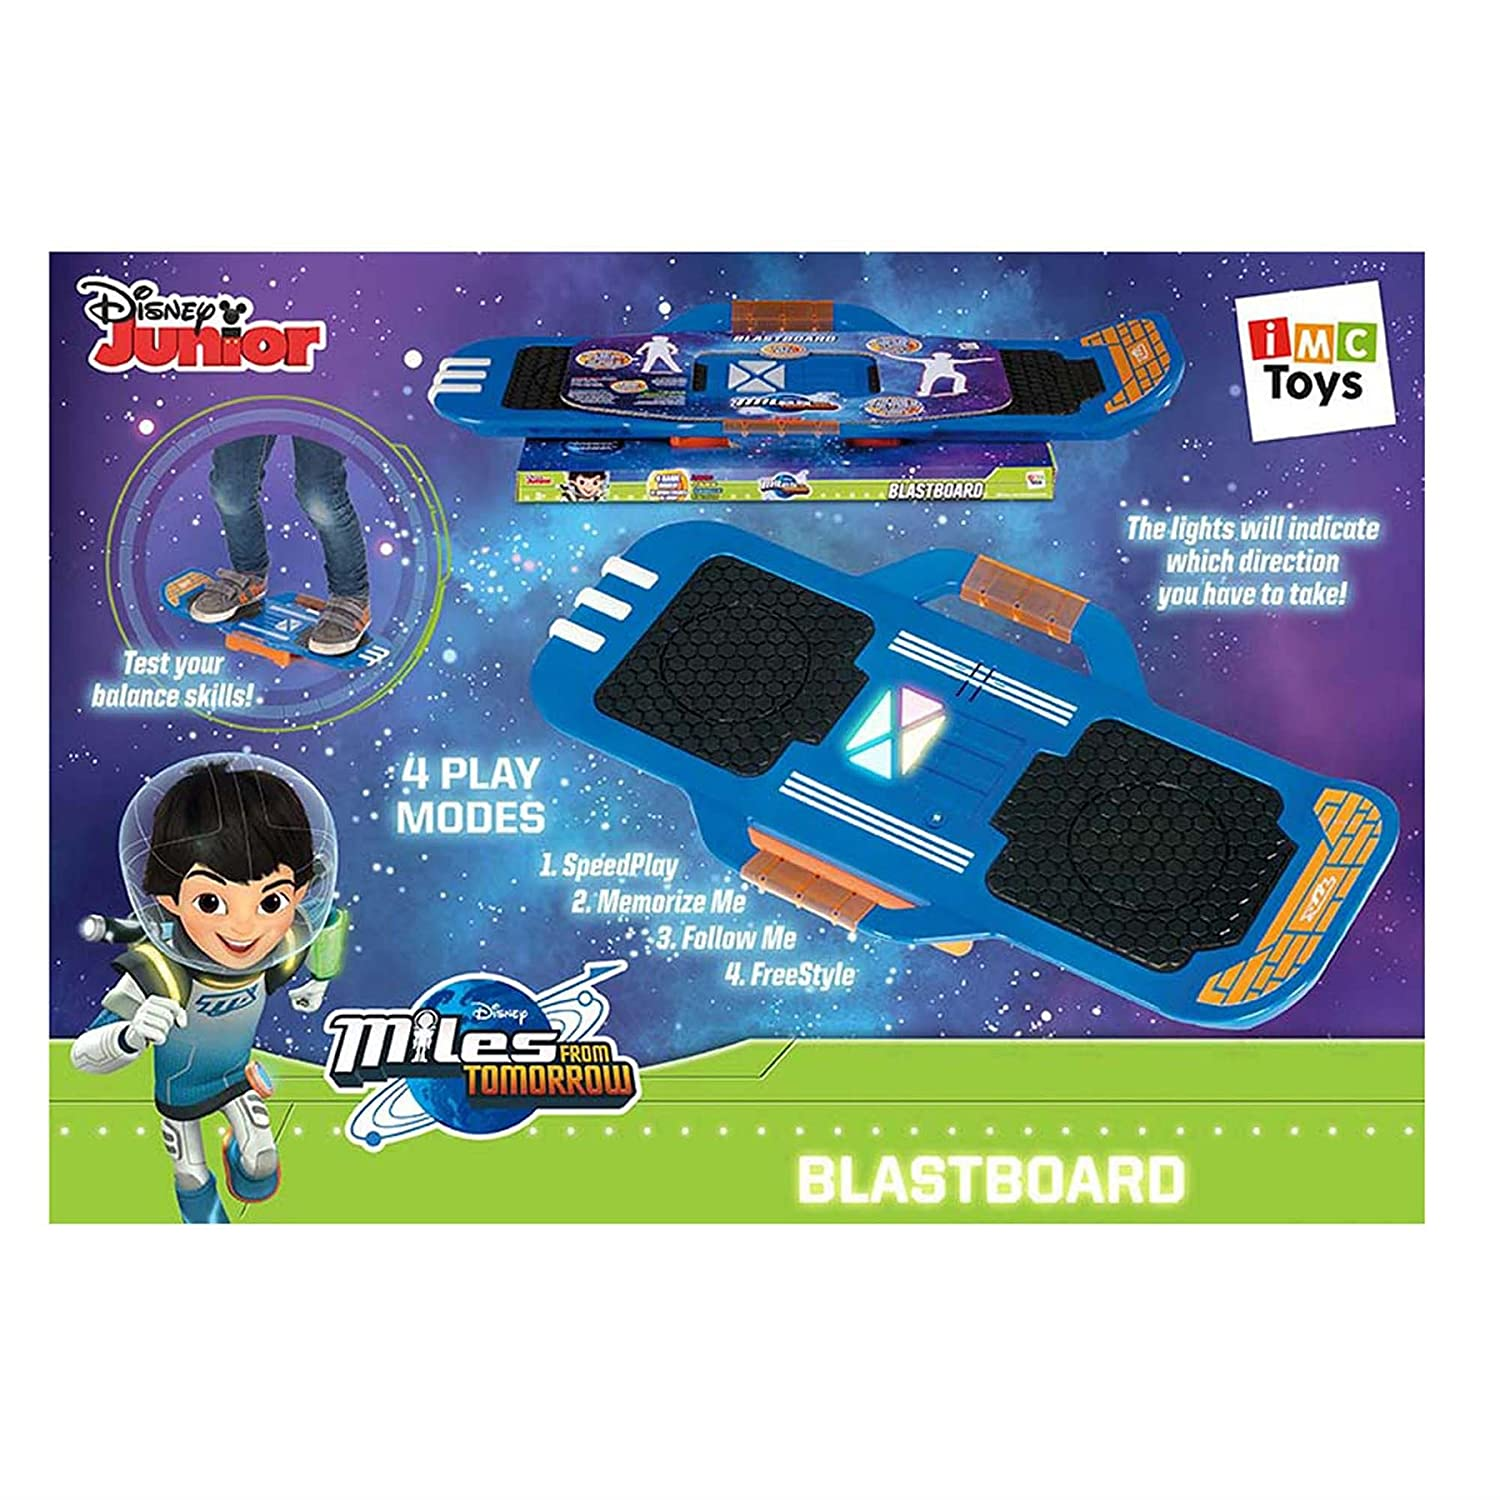 Film- & TV-Spielzeug Disneys Miles From Torrow Miles Blastboard IMCToys 481169